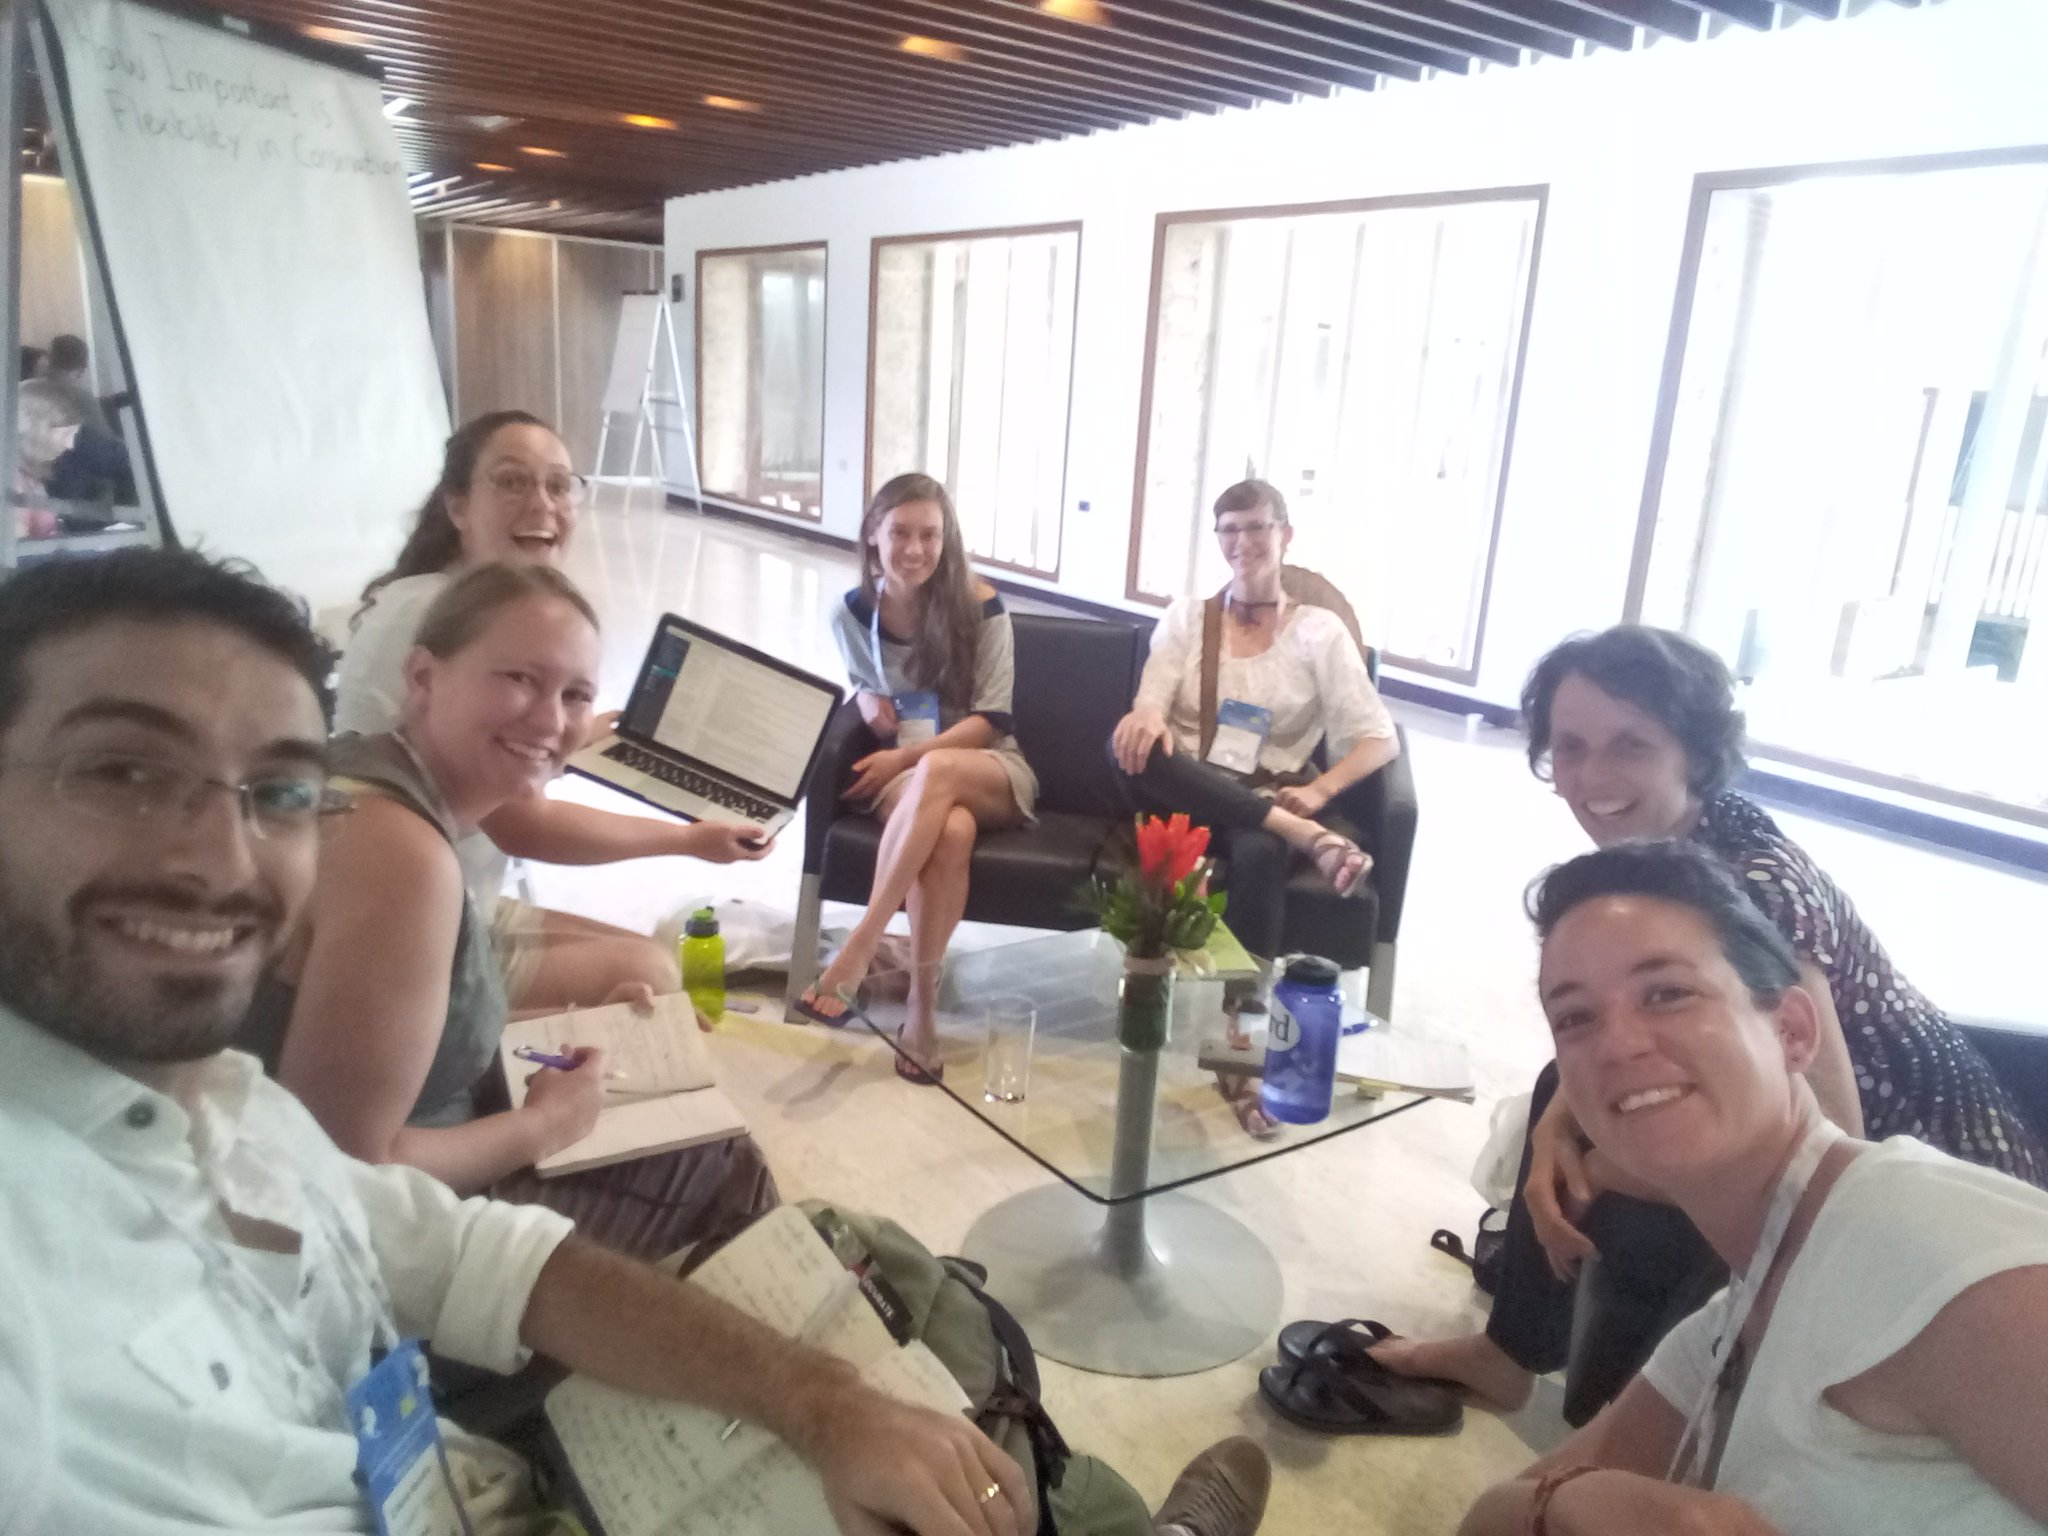 How important is flexibility in conservation? Very nice discussion with researchers from Australia, Colombia, Germany, Brazil,USA. #ICCB2017 https://t.co/f4EpawqDpx